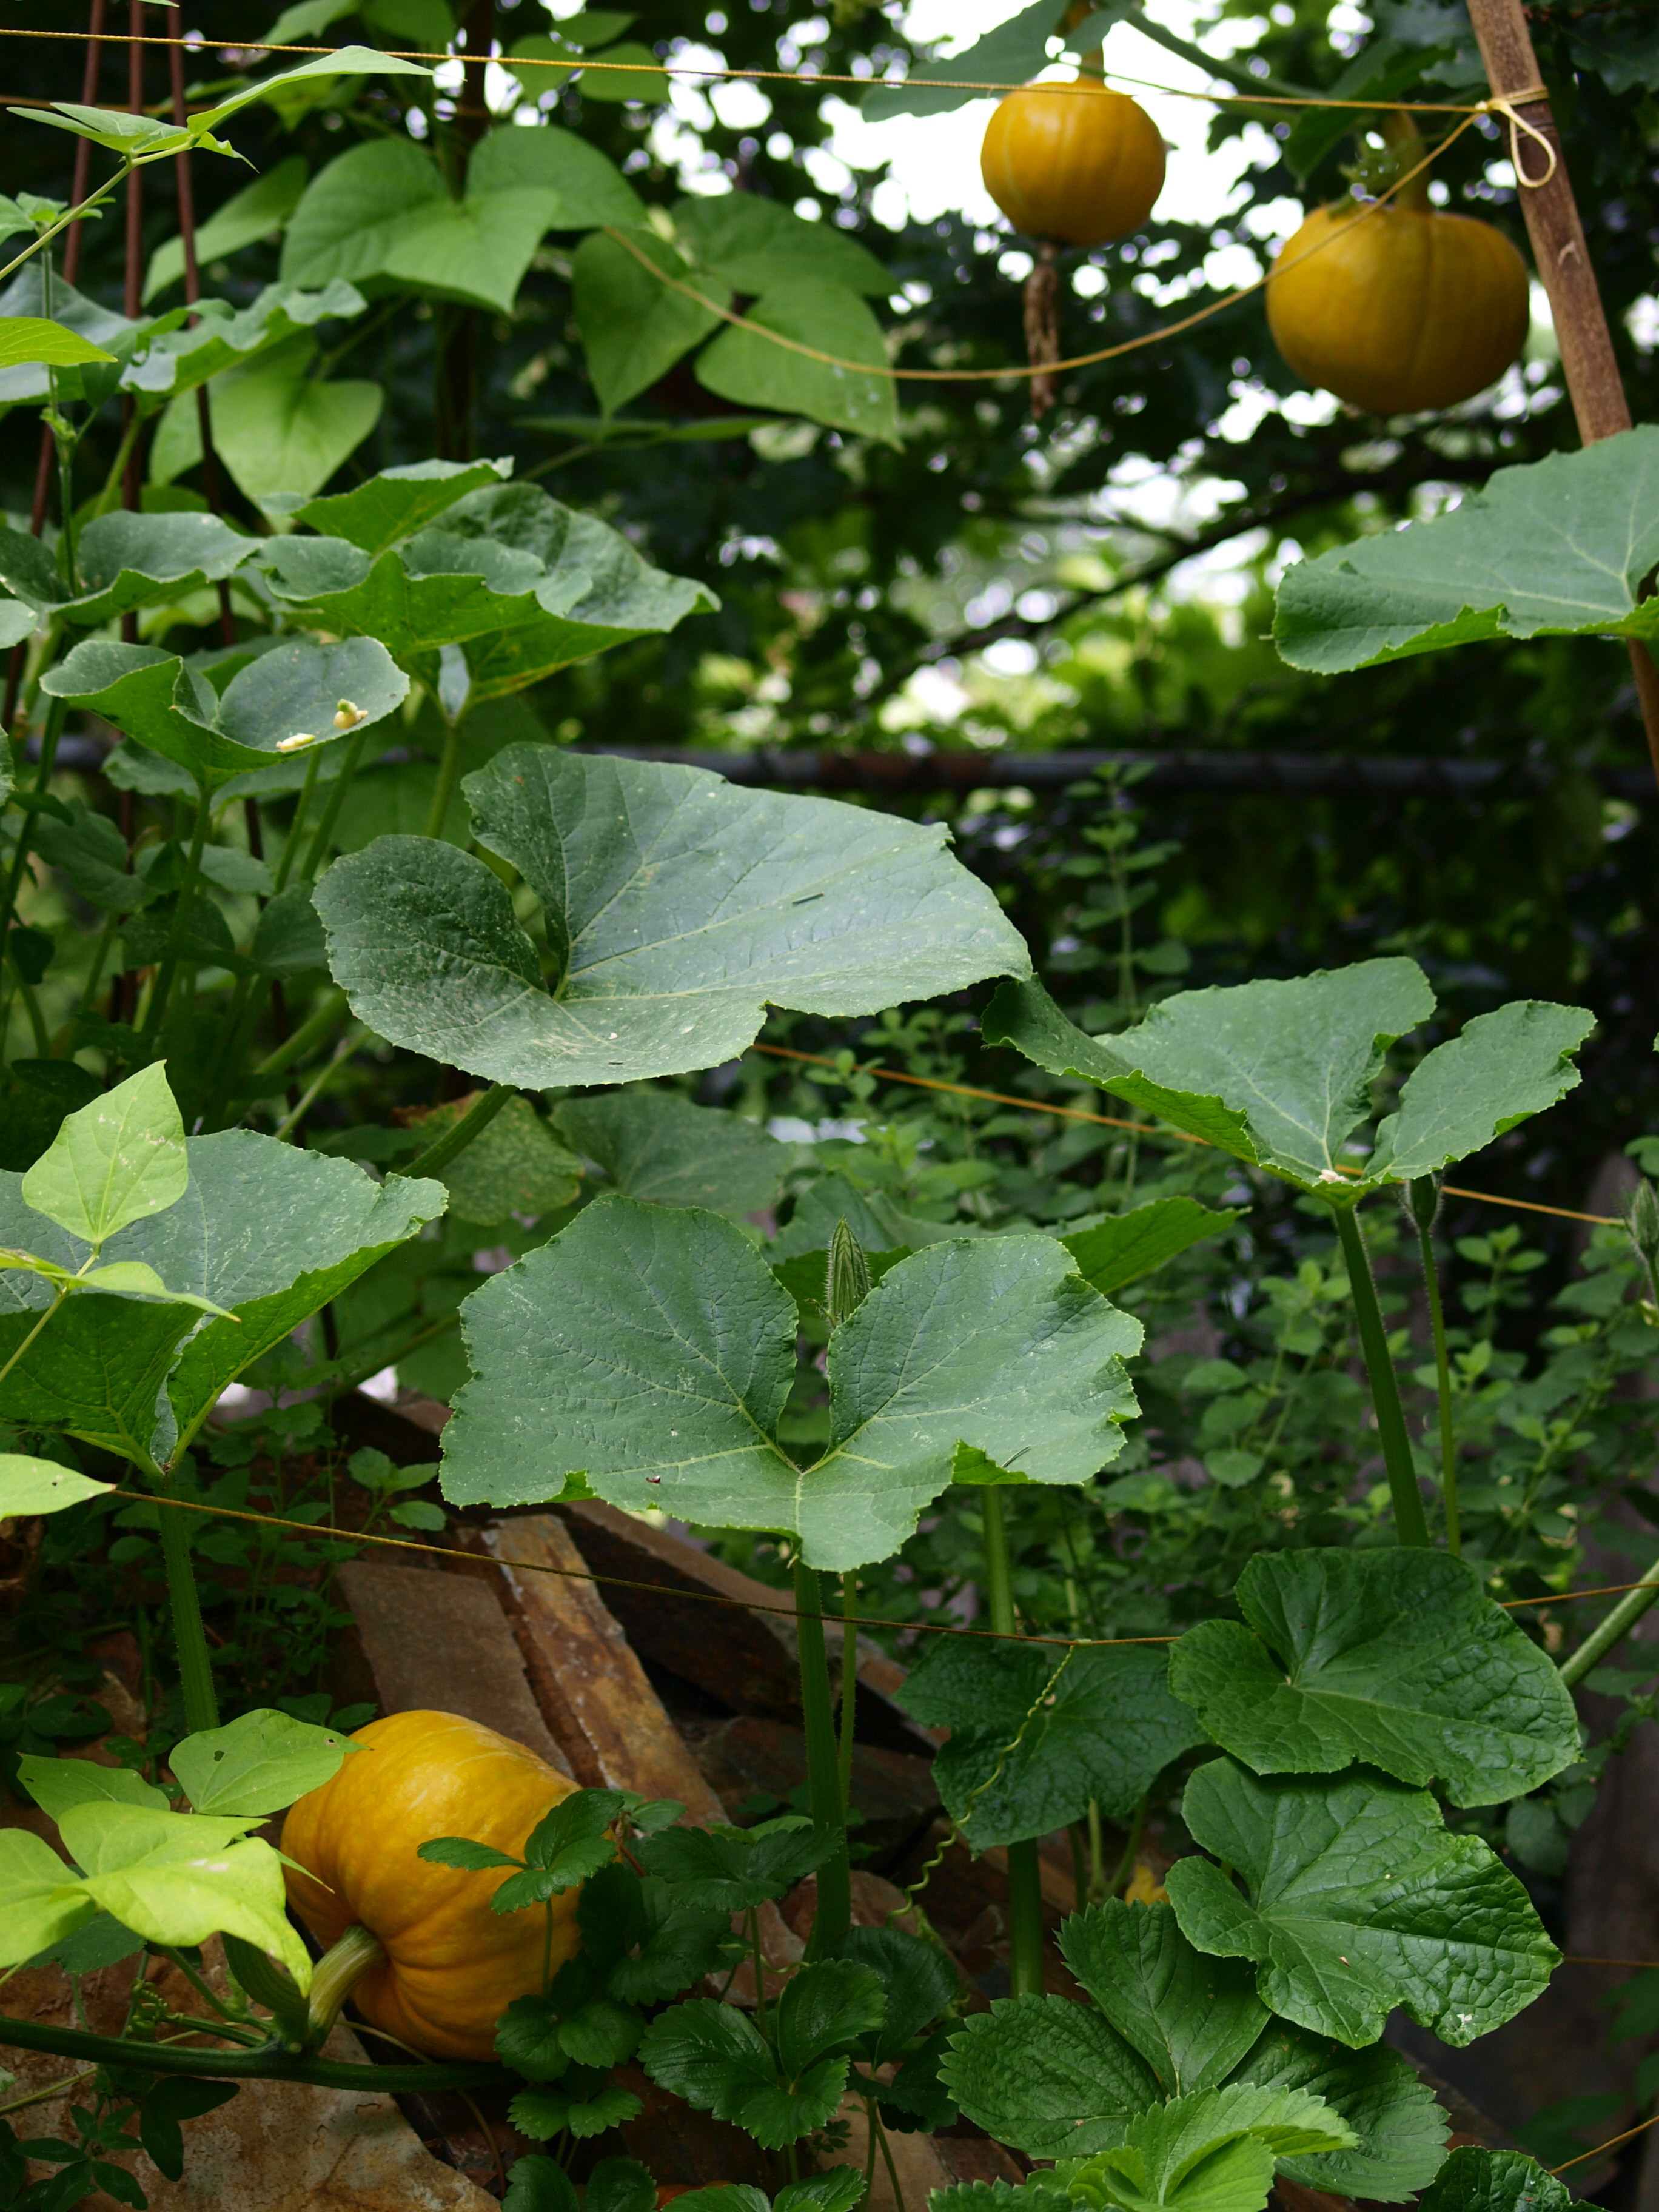 kabocha squash and scarlet runner beans